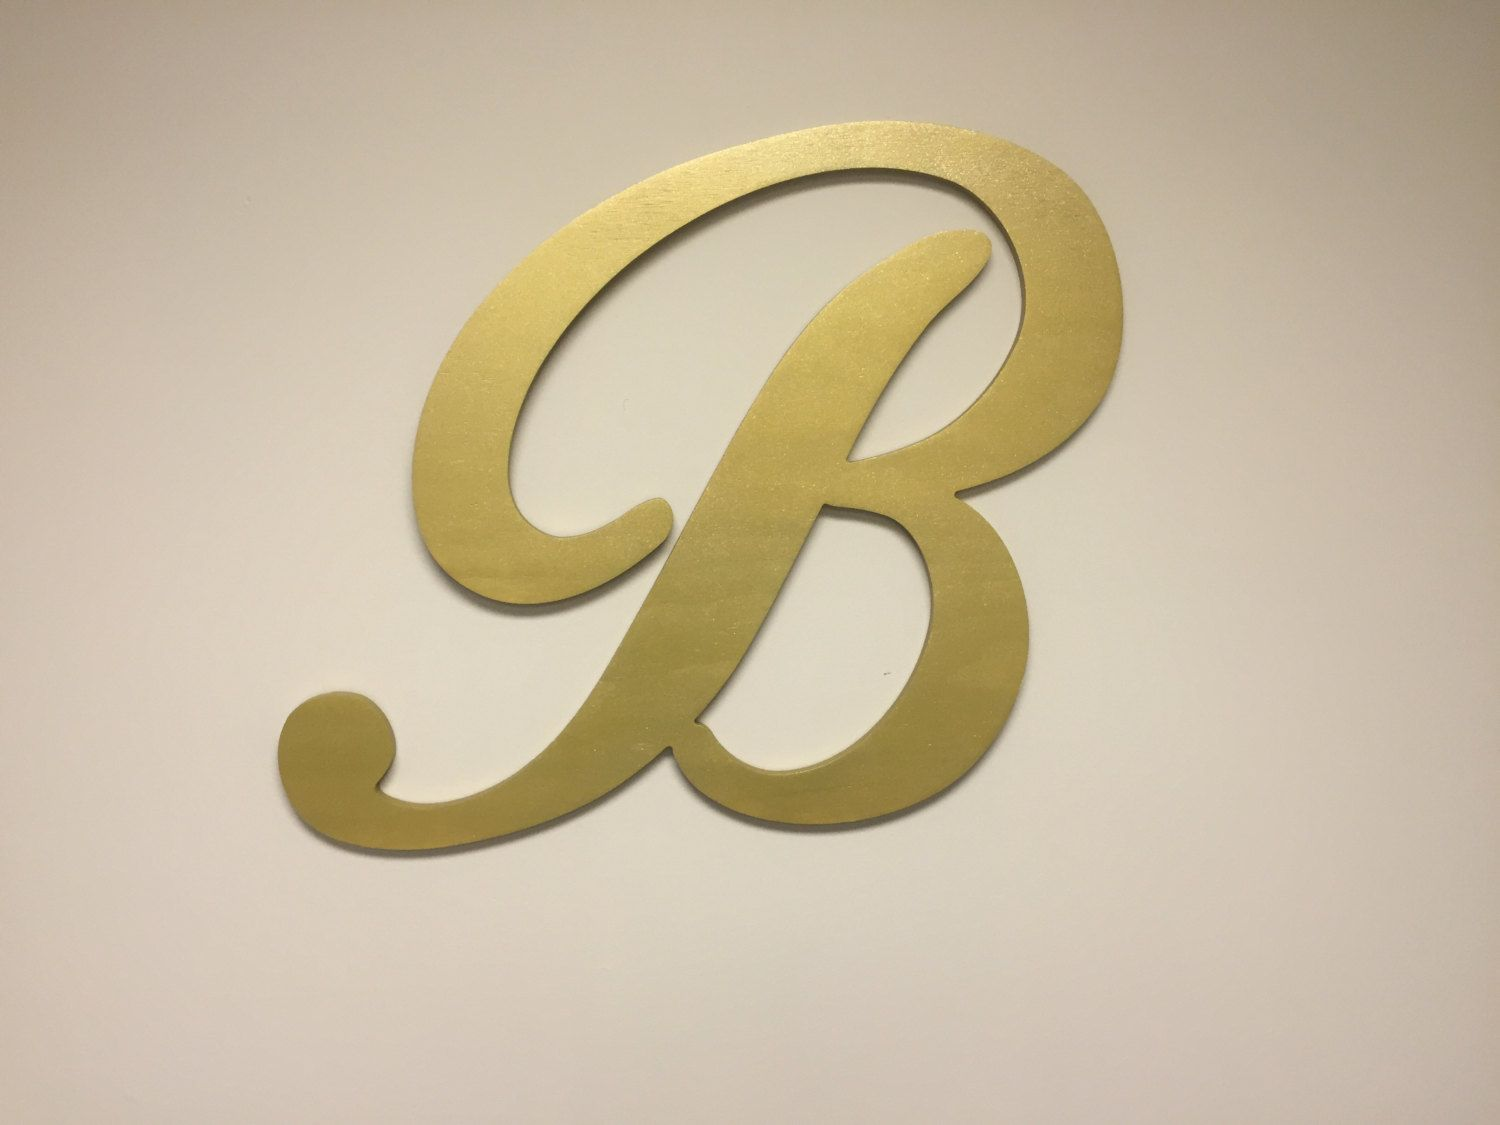 Gold Letter Wall Decor Impressive Gold Glitter Wood Wall Letter Wall ...